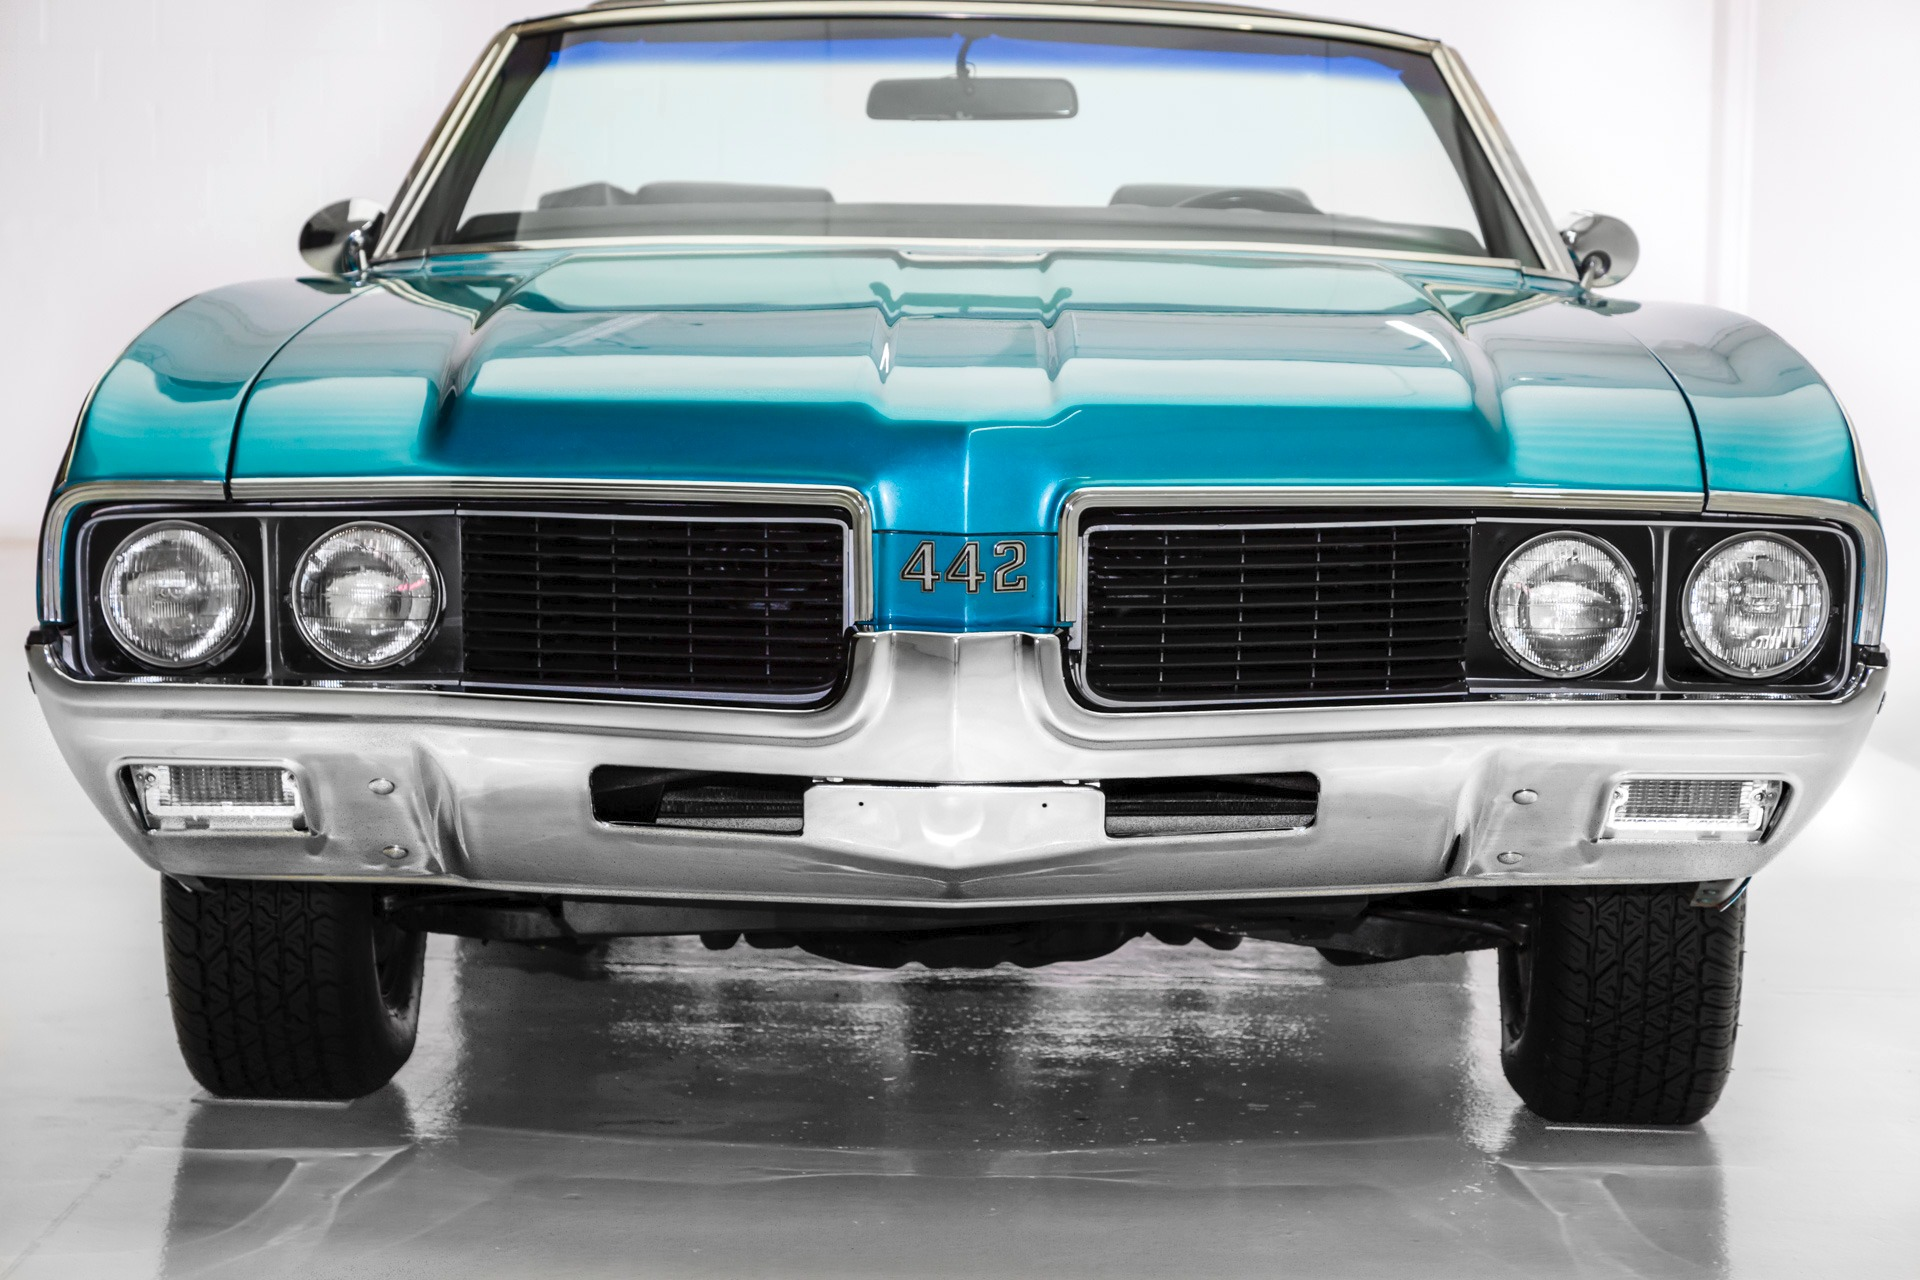 Photo 1969 Oldsmobile 442 Convertible 344 vin 455 FINAL CLEARANCE SALE 34900